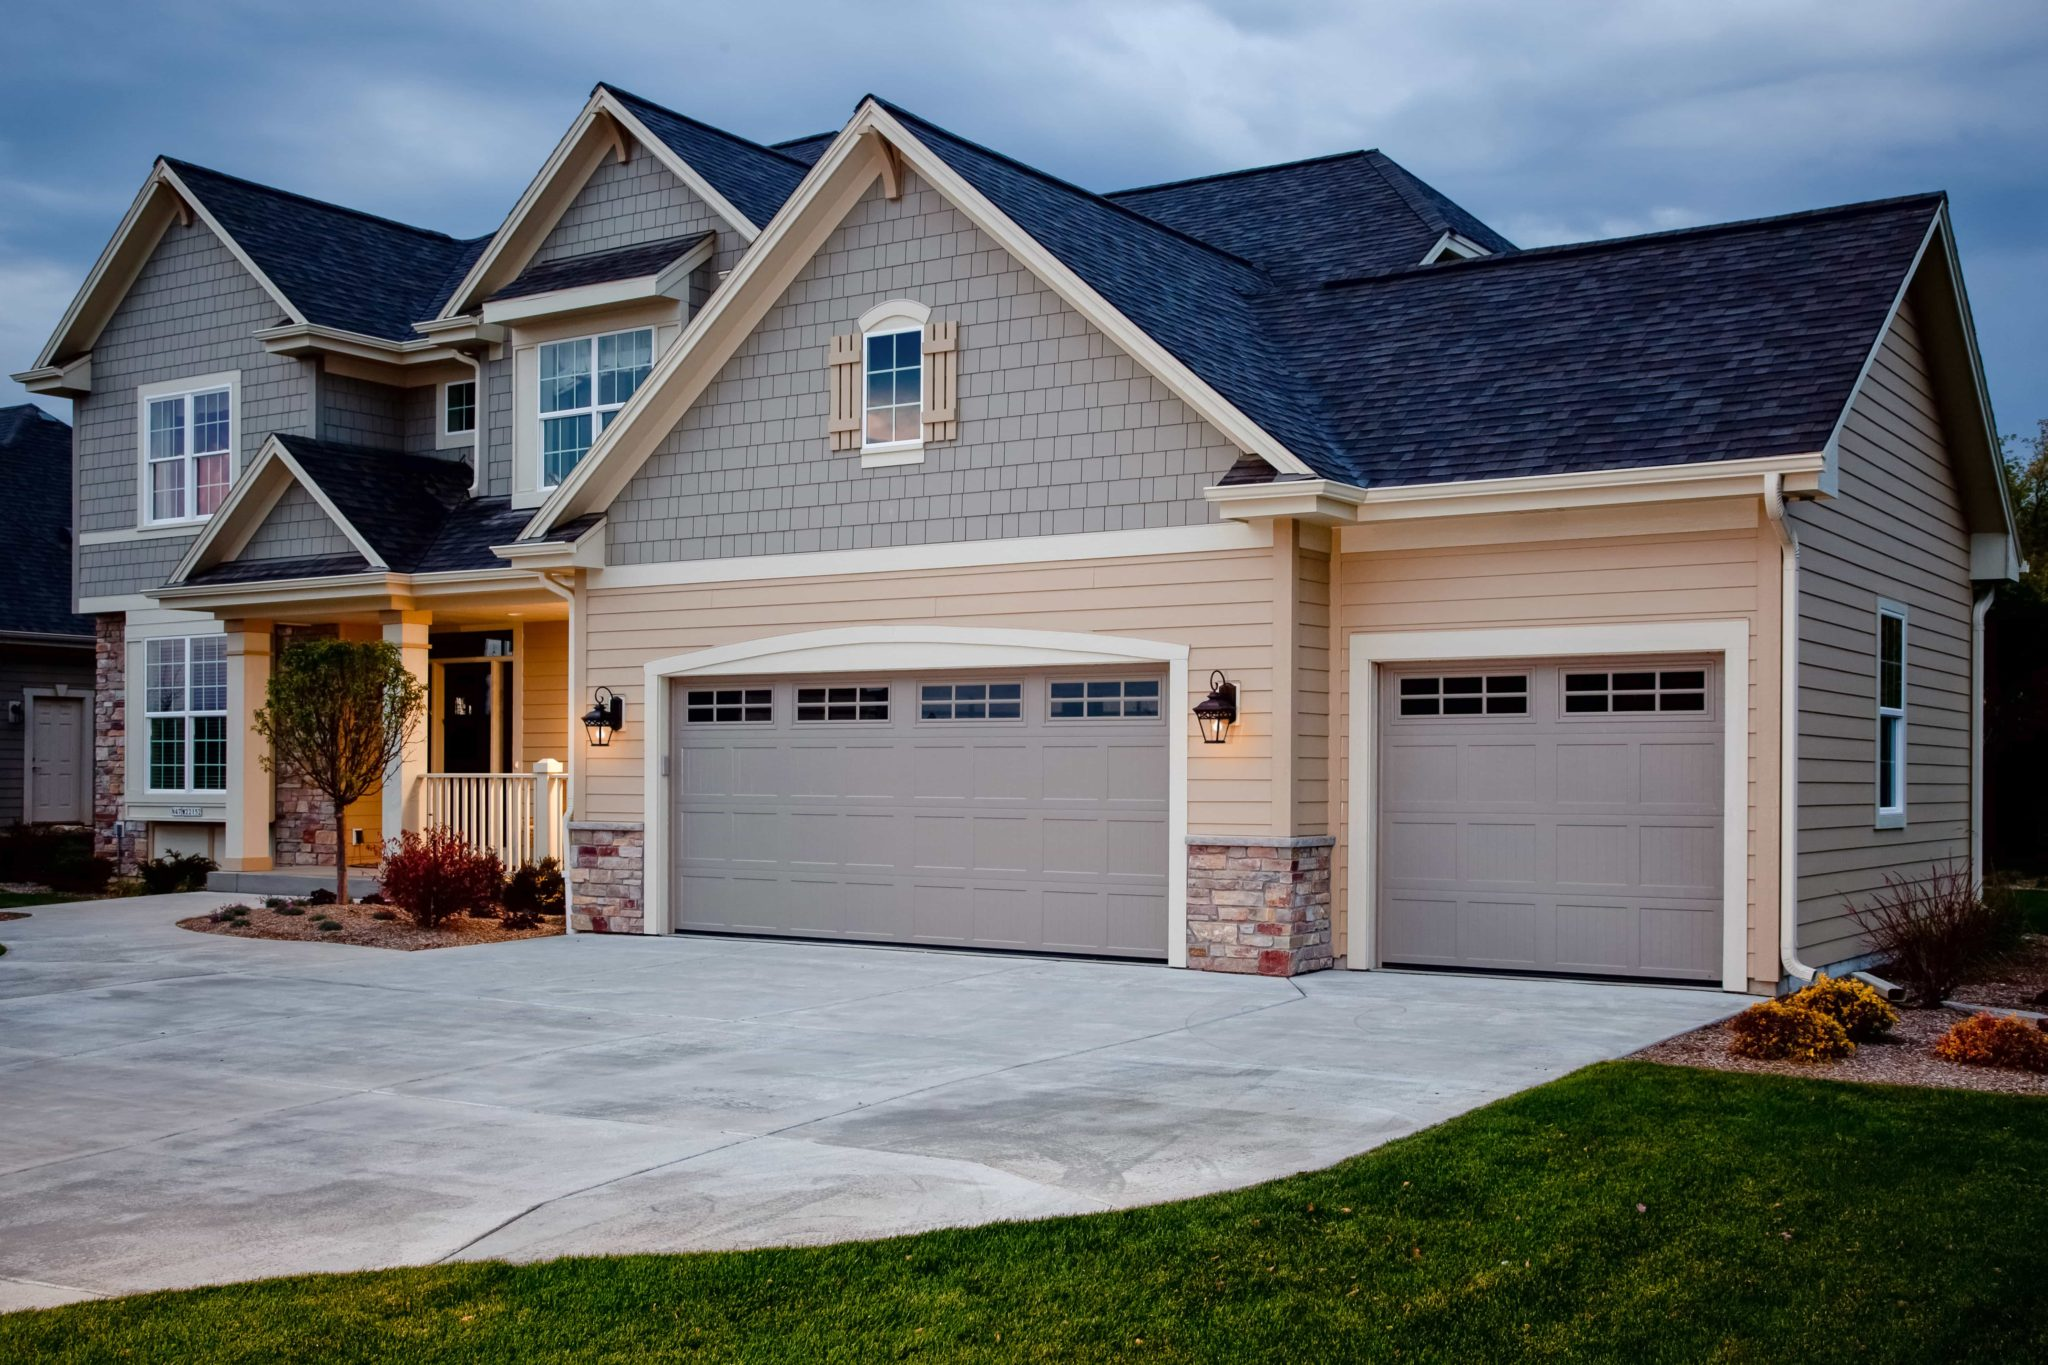 Carriage House Garage Doors New England Standard Corp